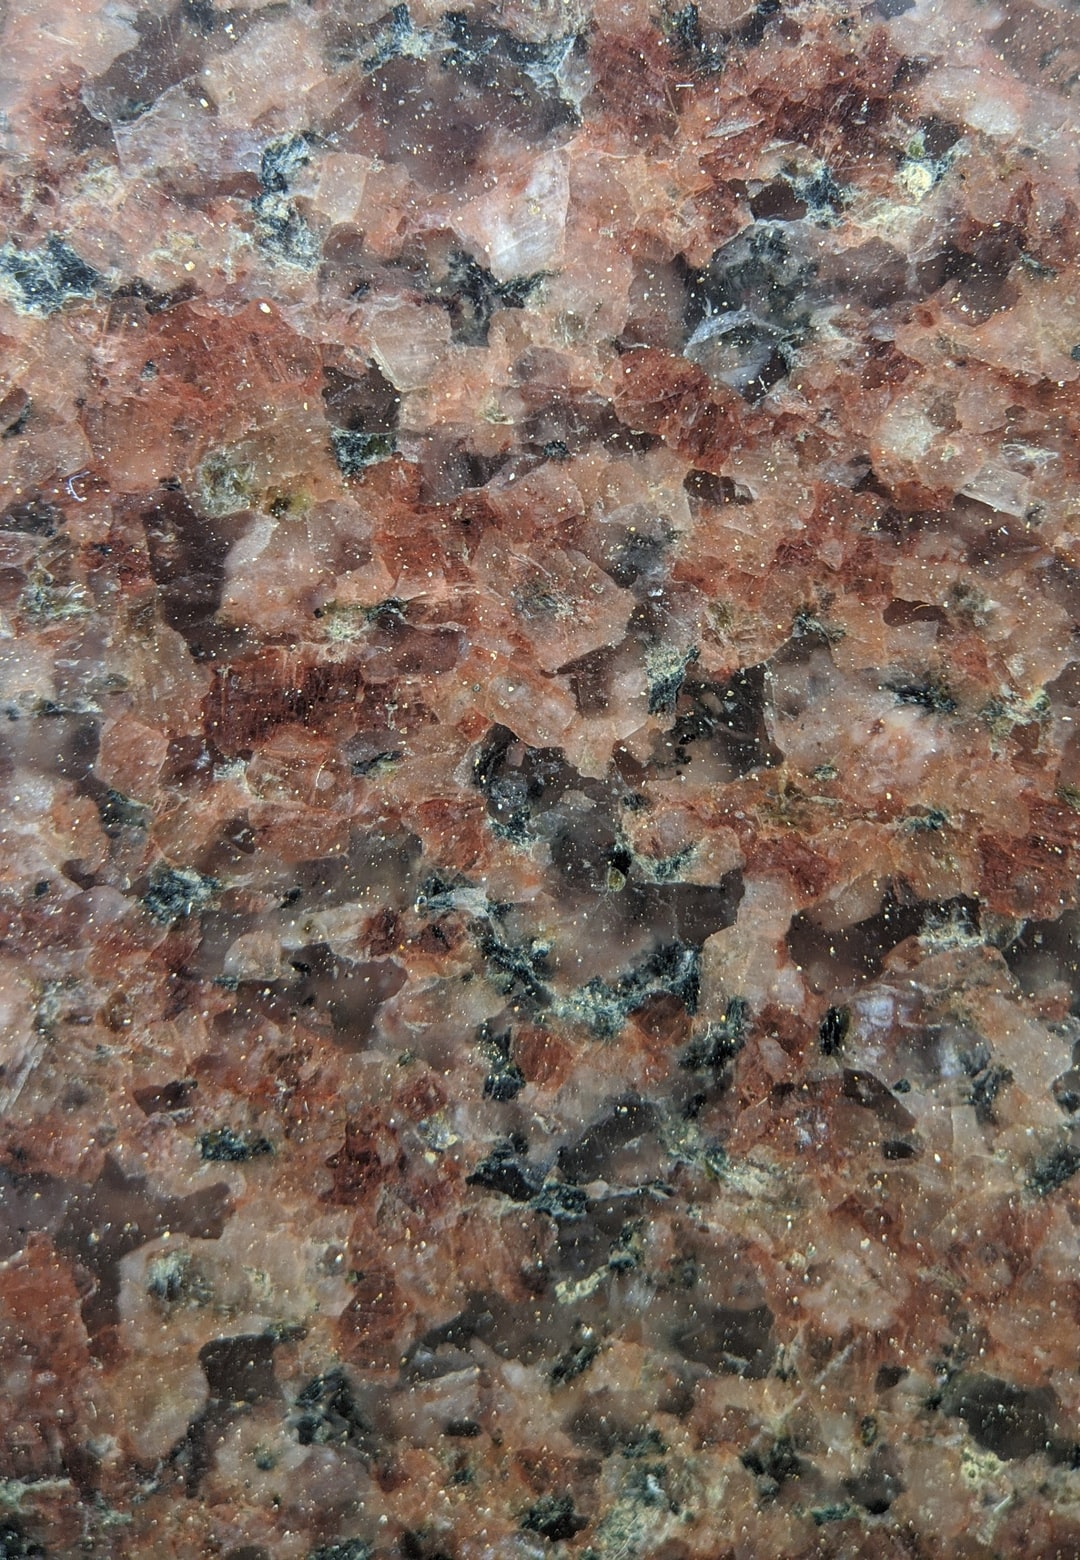 Patterns in a granite tile. Macro photography in Pixel